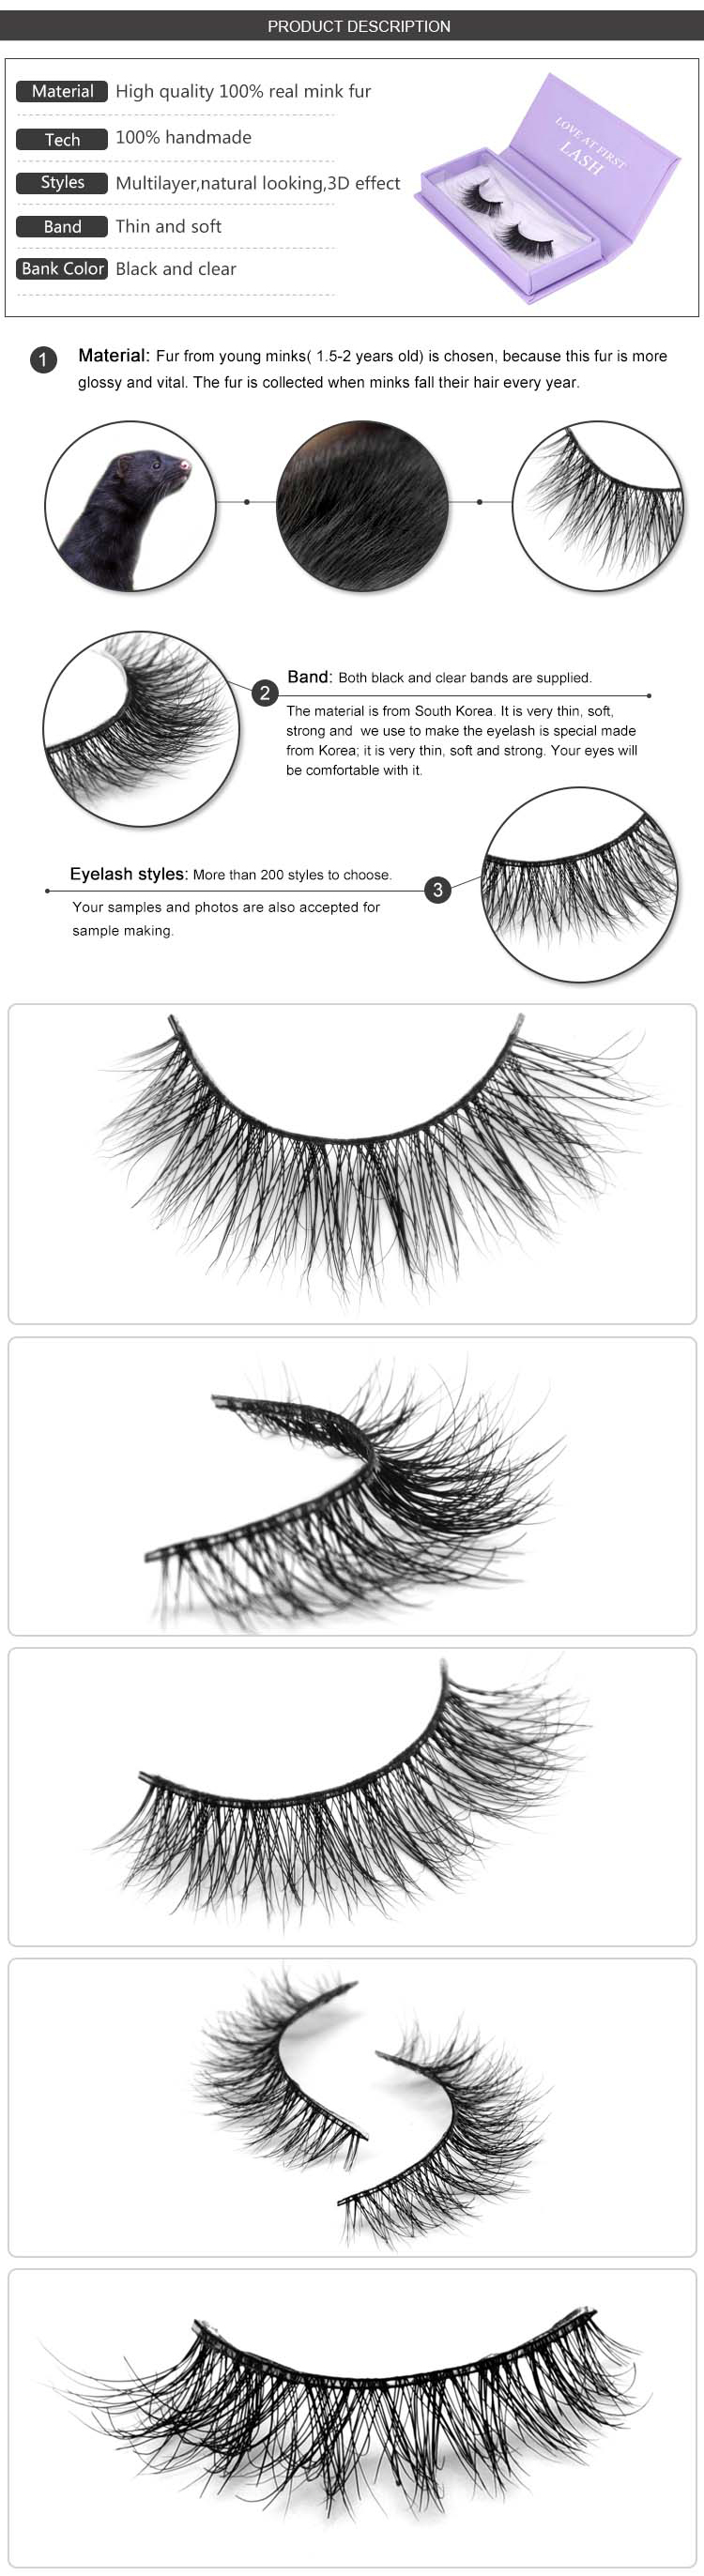 8d1ffc250c0 ... Mink Own Brand Lashes Wholesale Fashion 3d Silk Lashes Private Label